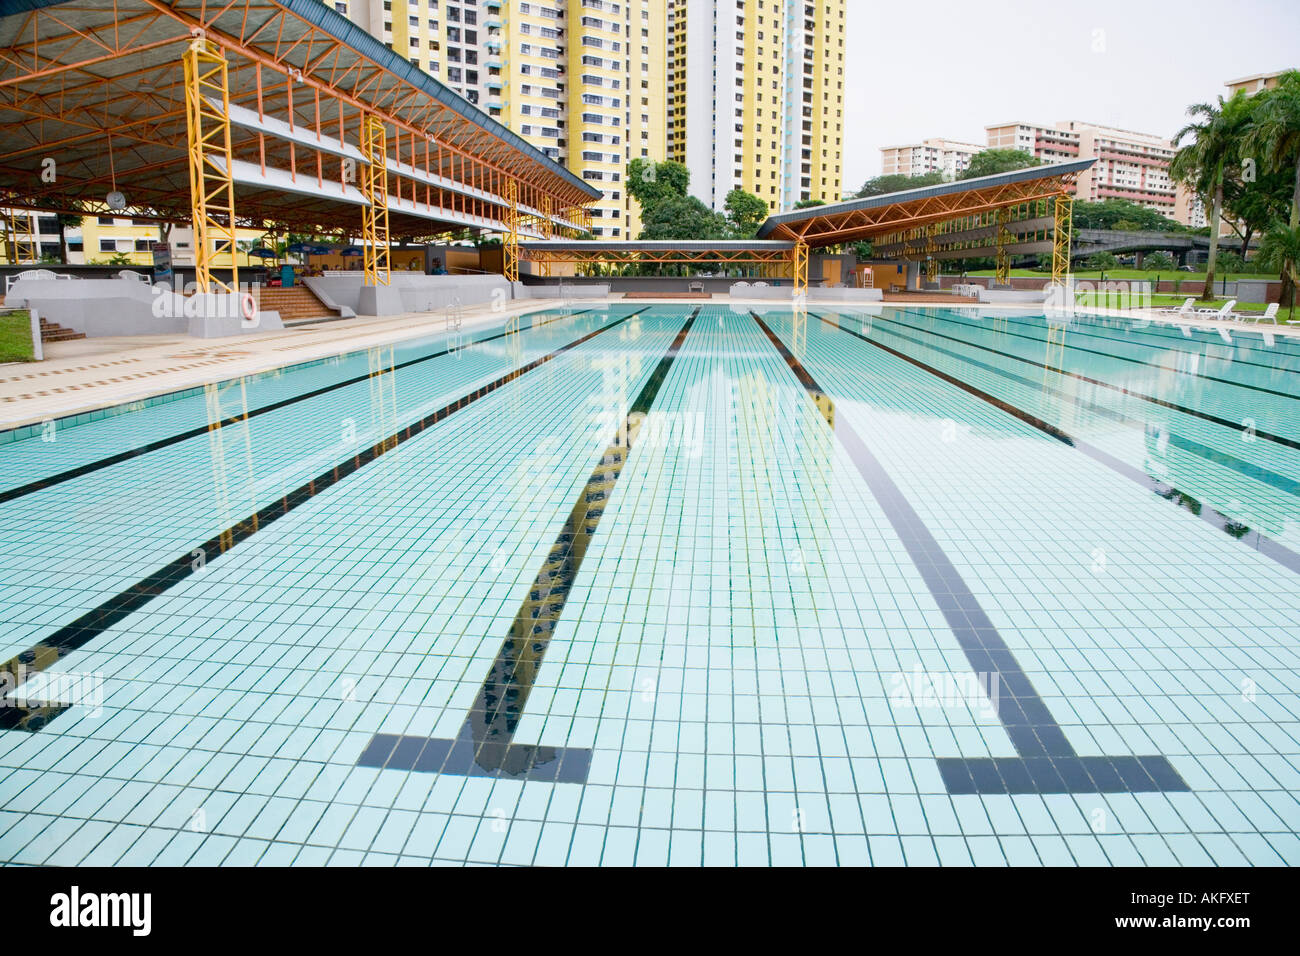 Swimming pool in front of buildings, Clementi Swimming ...